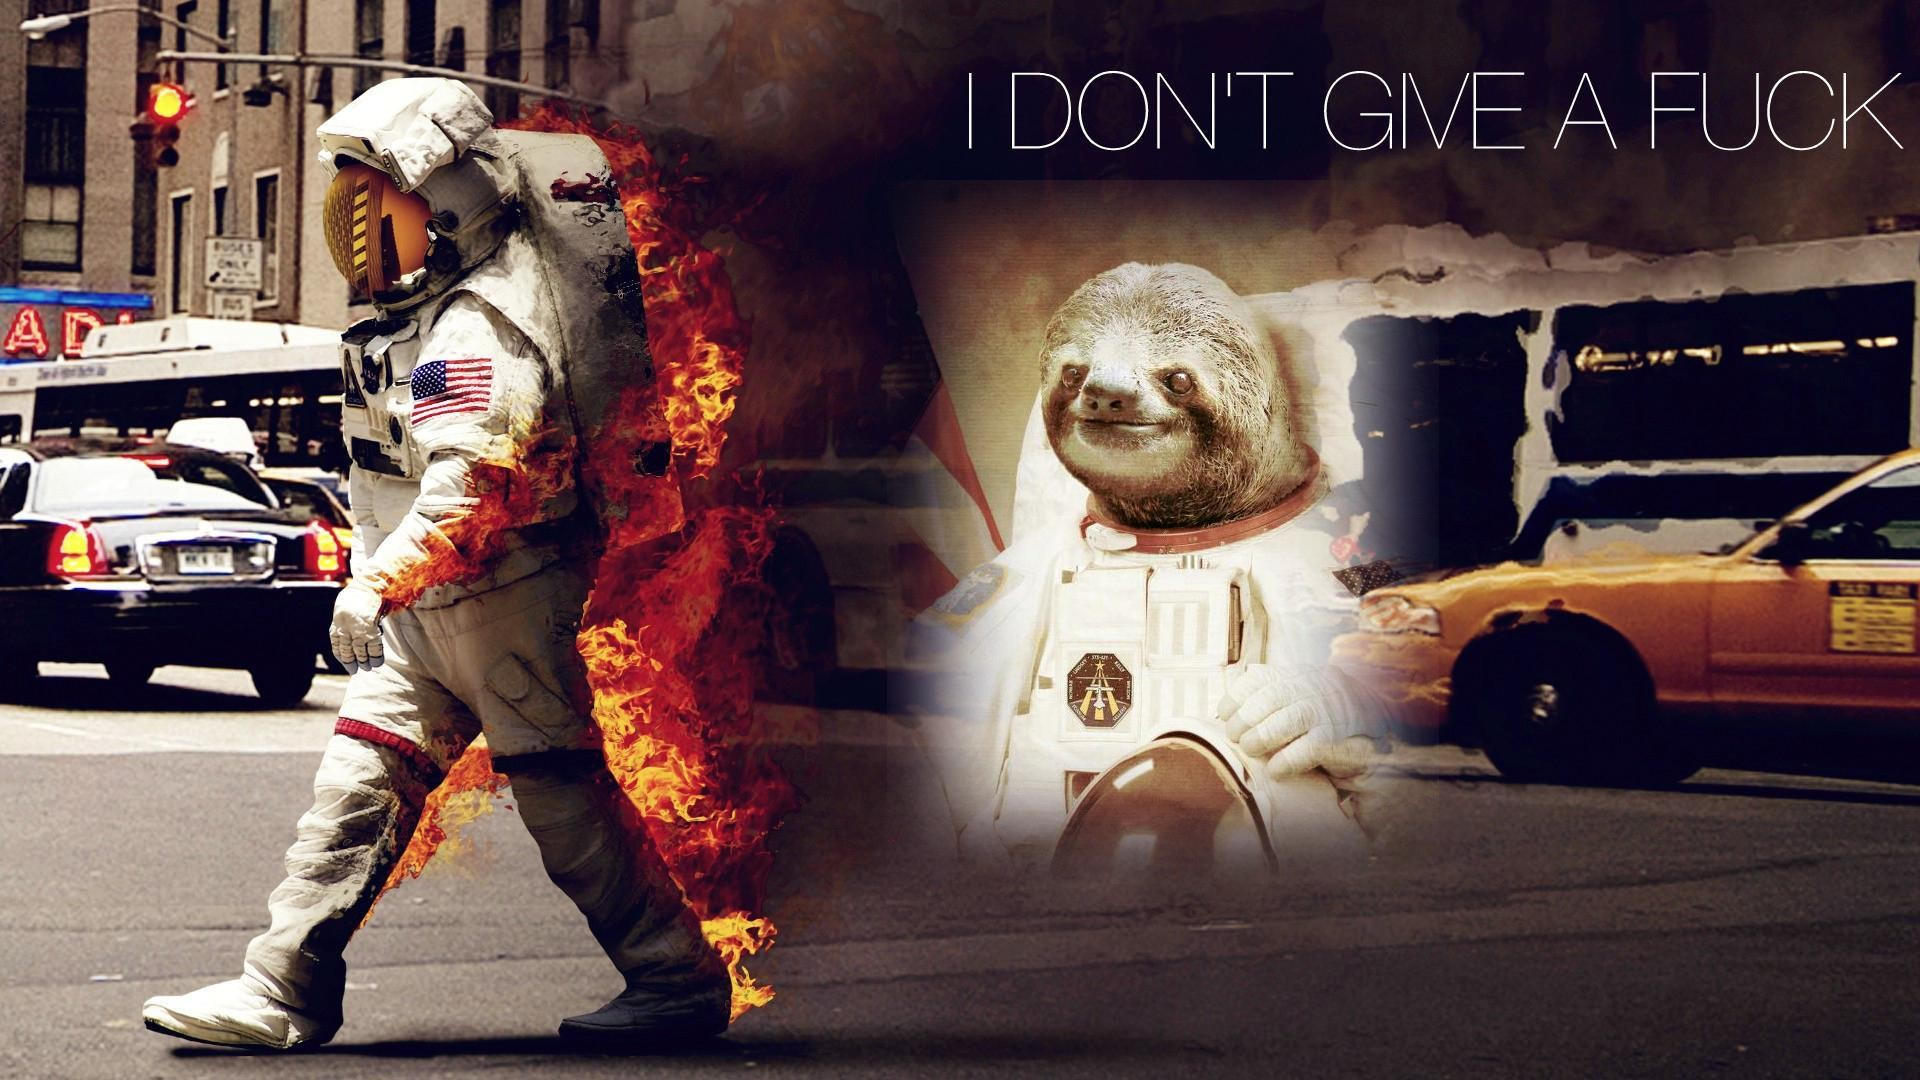 1920x1080 [Image - 437694] | Astronaut Sloth | Know Your Meme